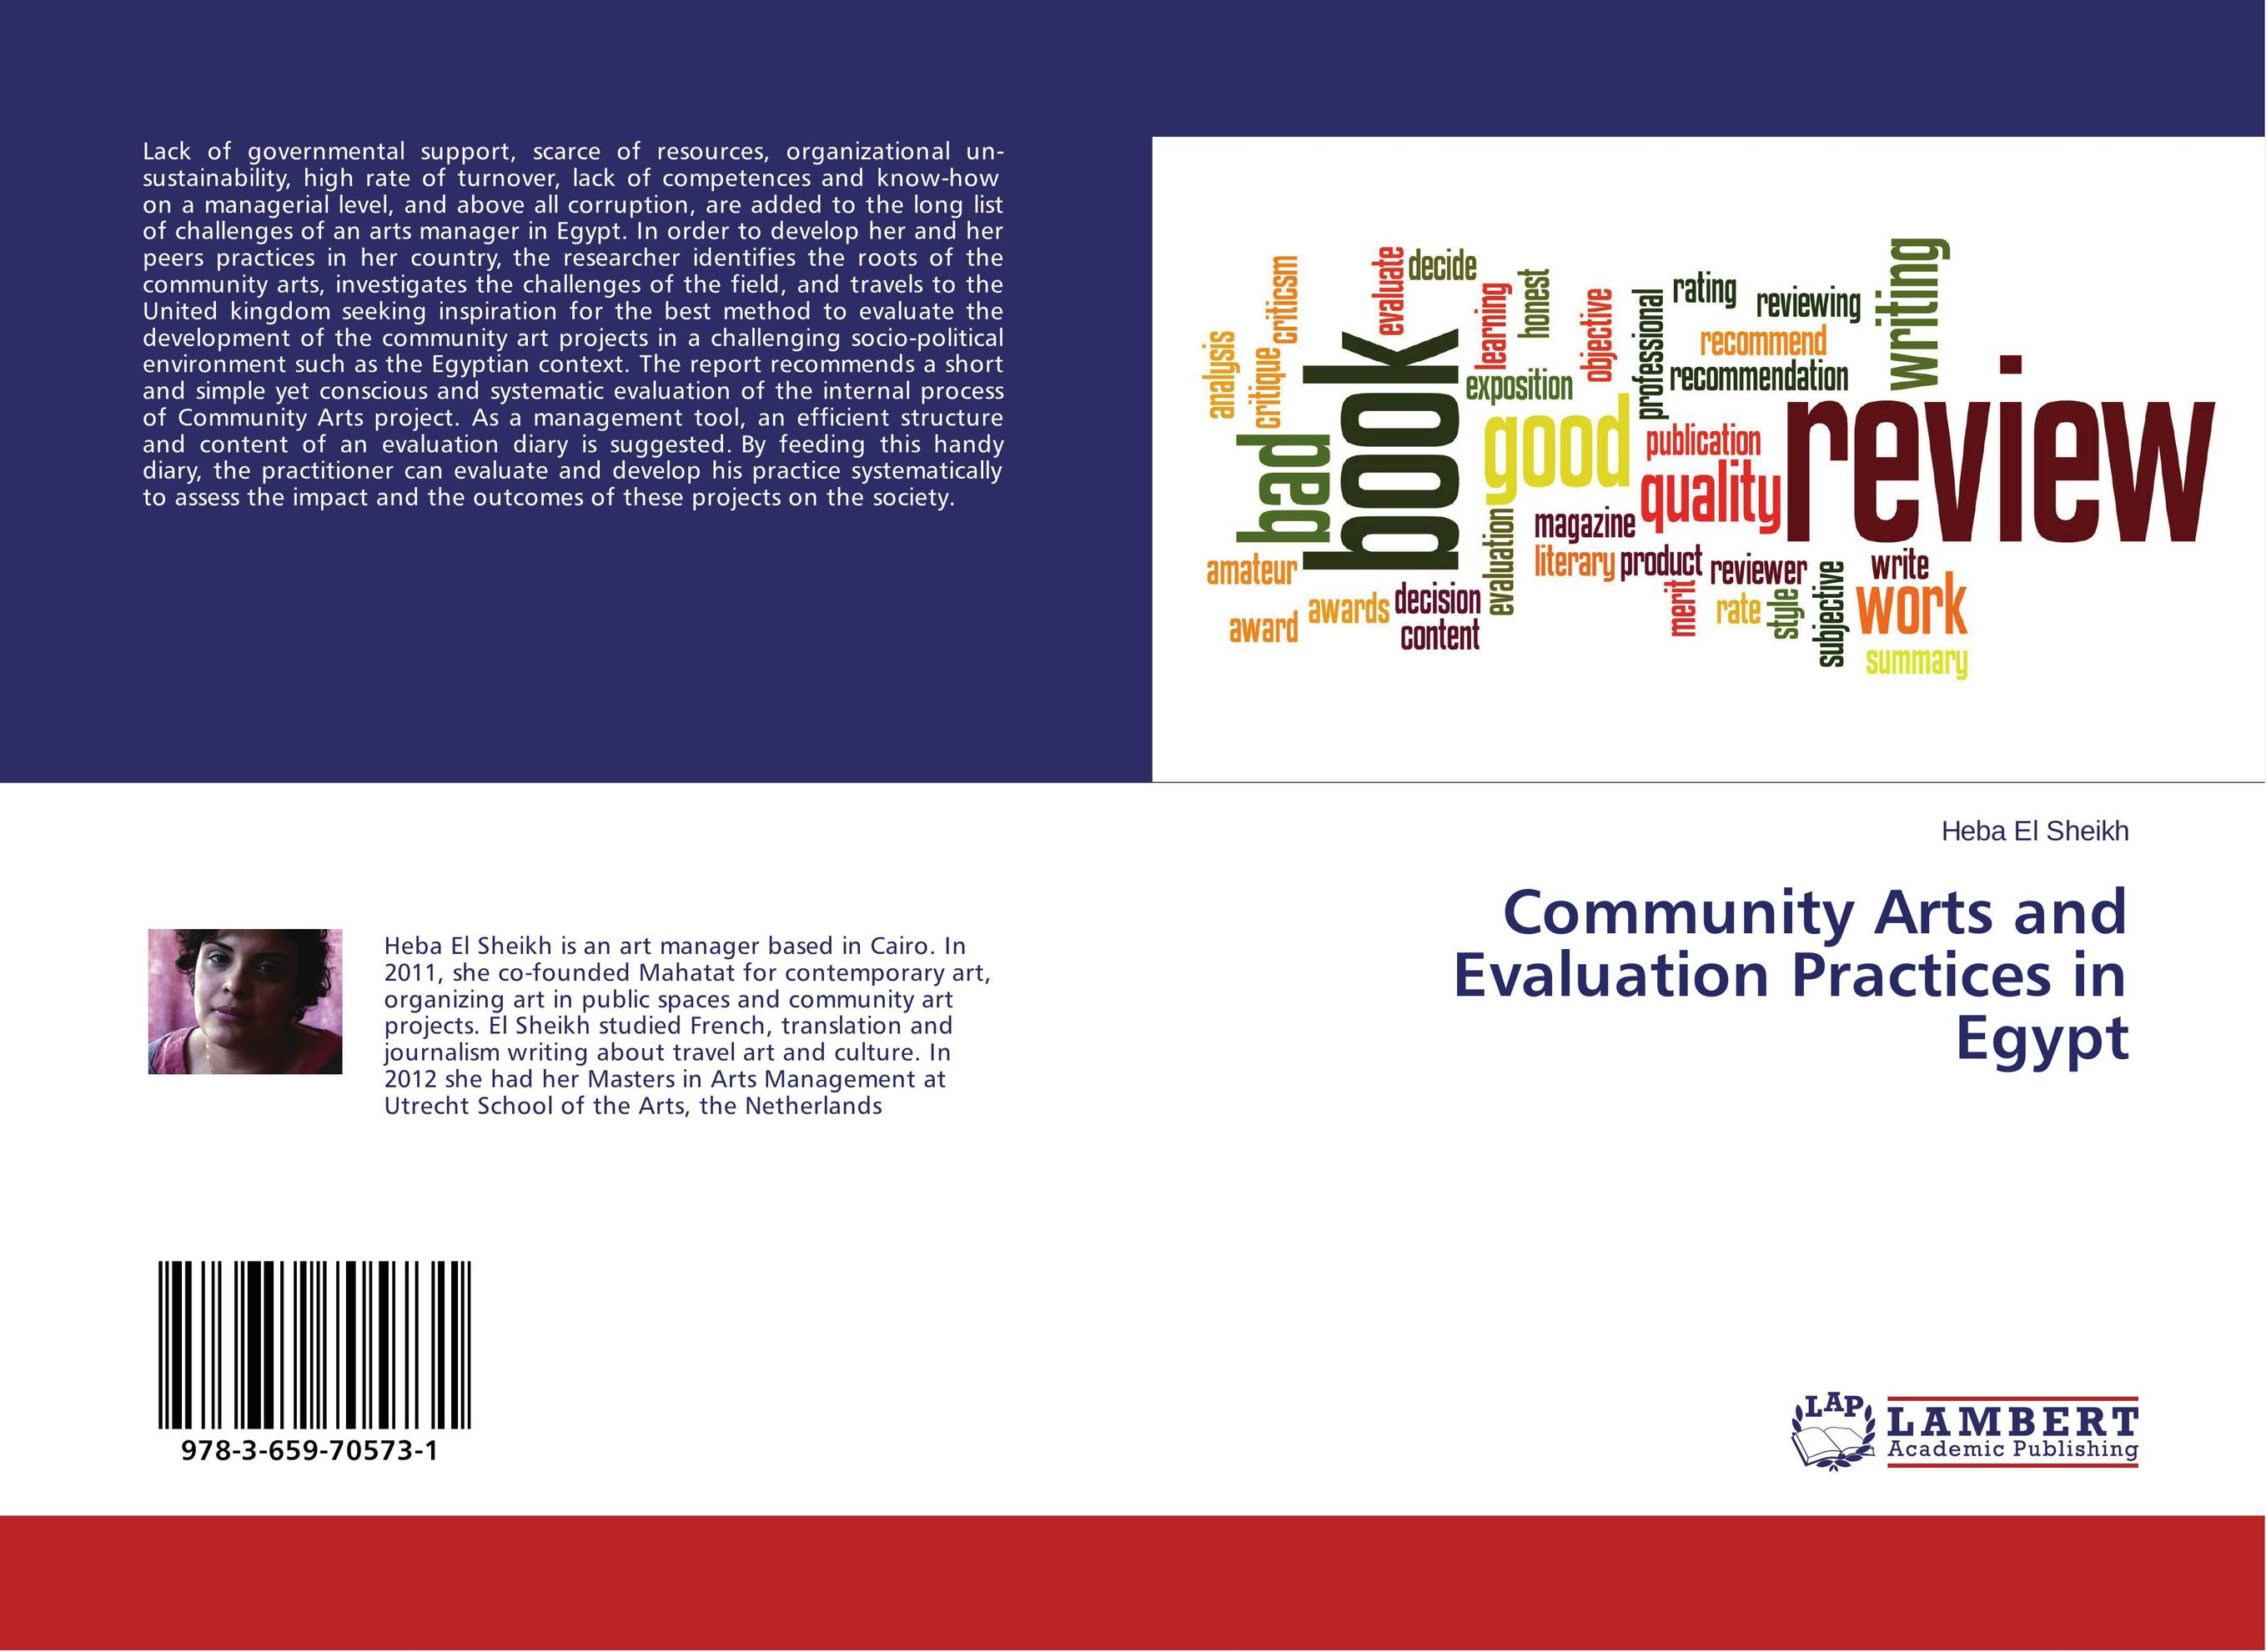 Community Arts and Evaluation Practices in Egypt evaluation of aqueous solubility of hydroxamic acids by pls modelling